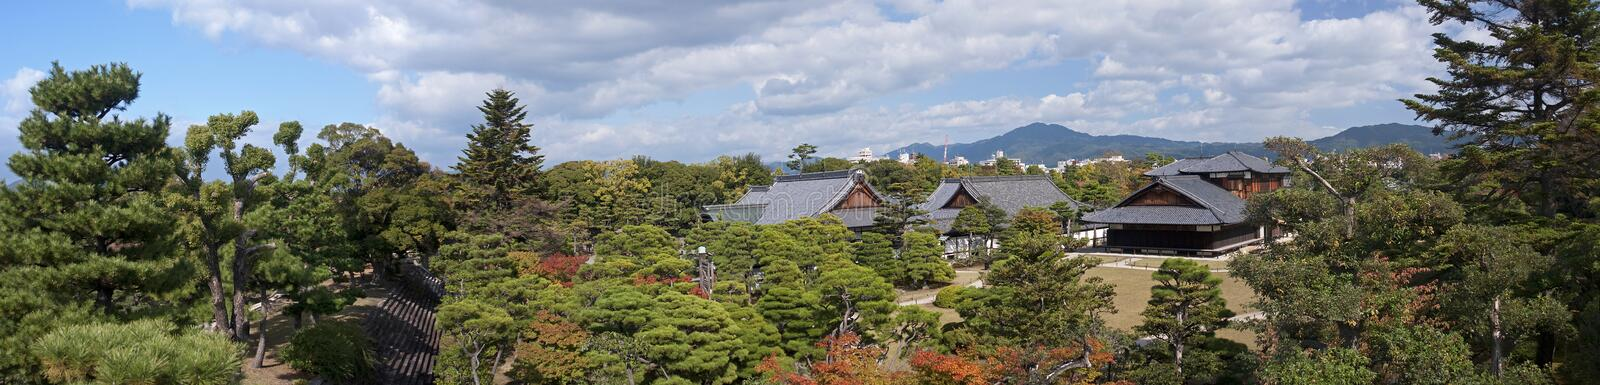 Download Castle in Kyoto, Japan stock image. Image of castle, gree - 28361473